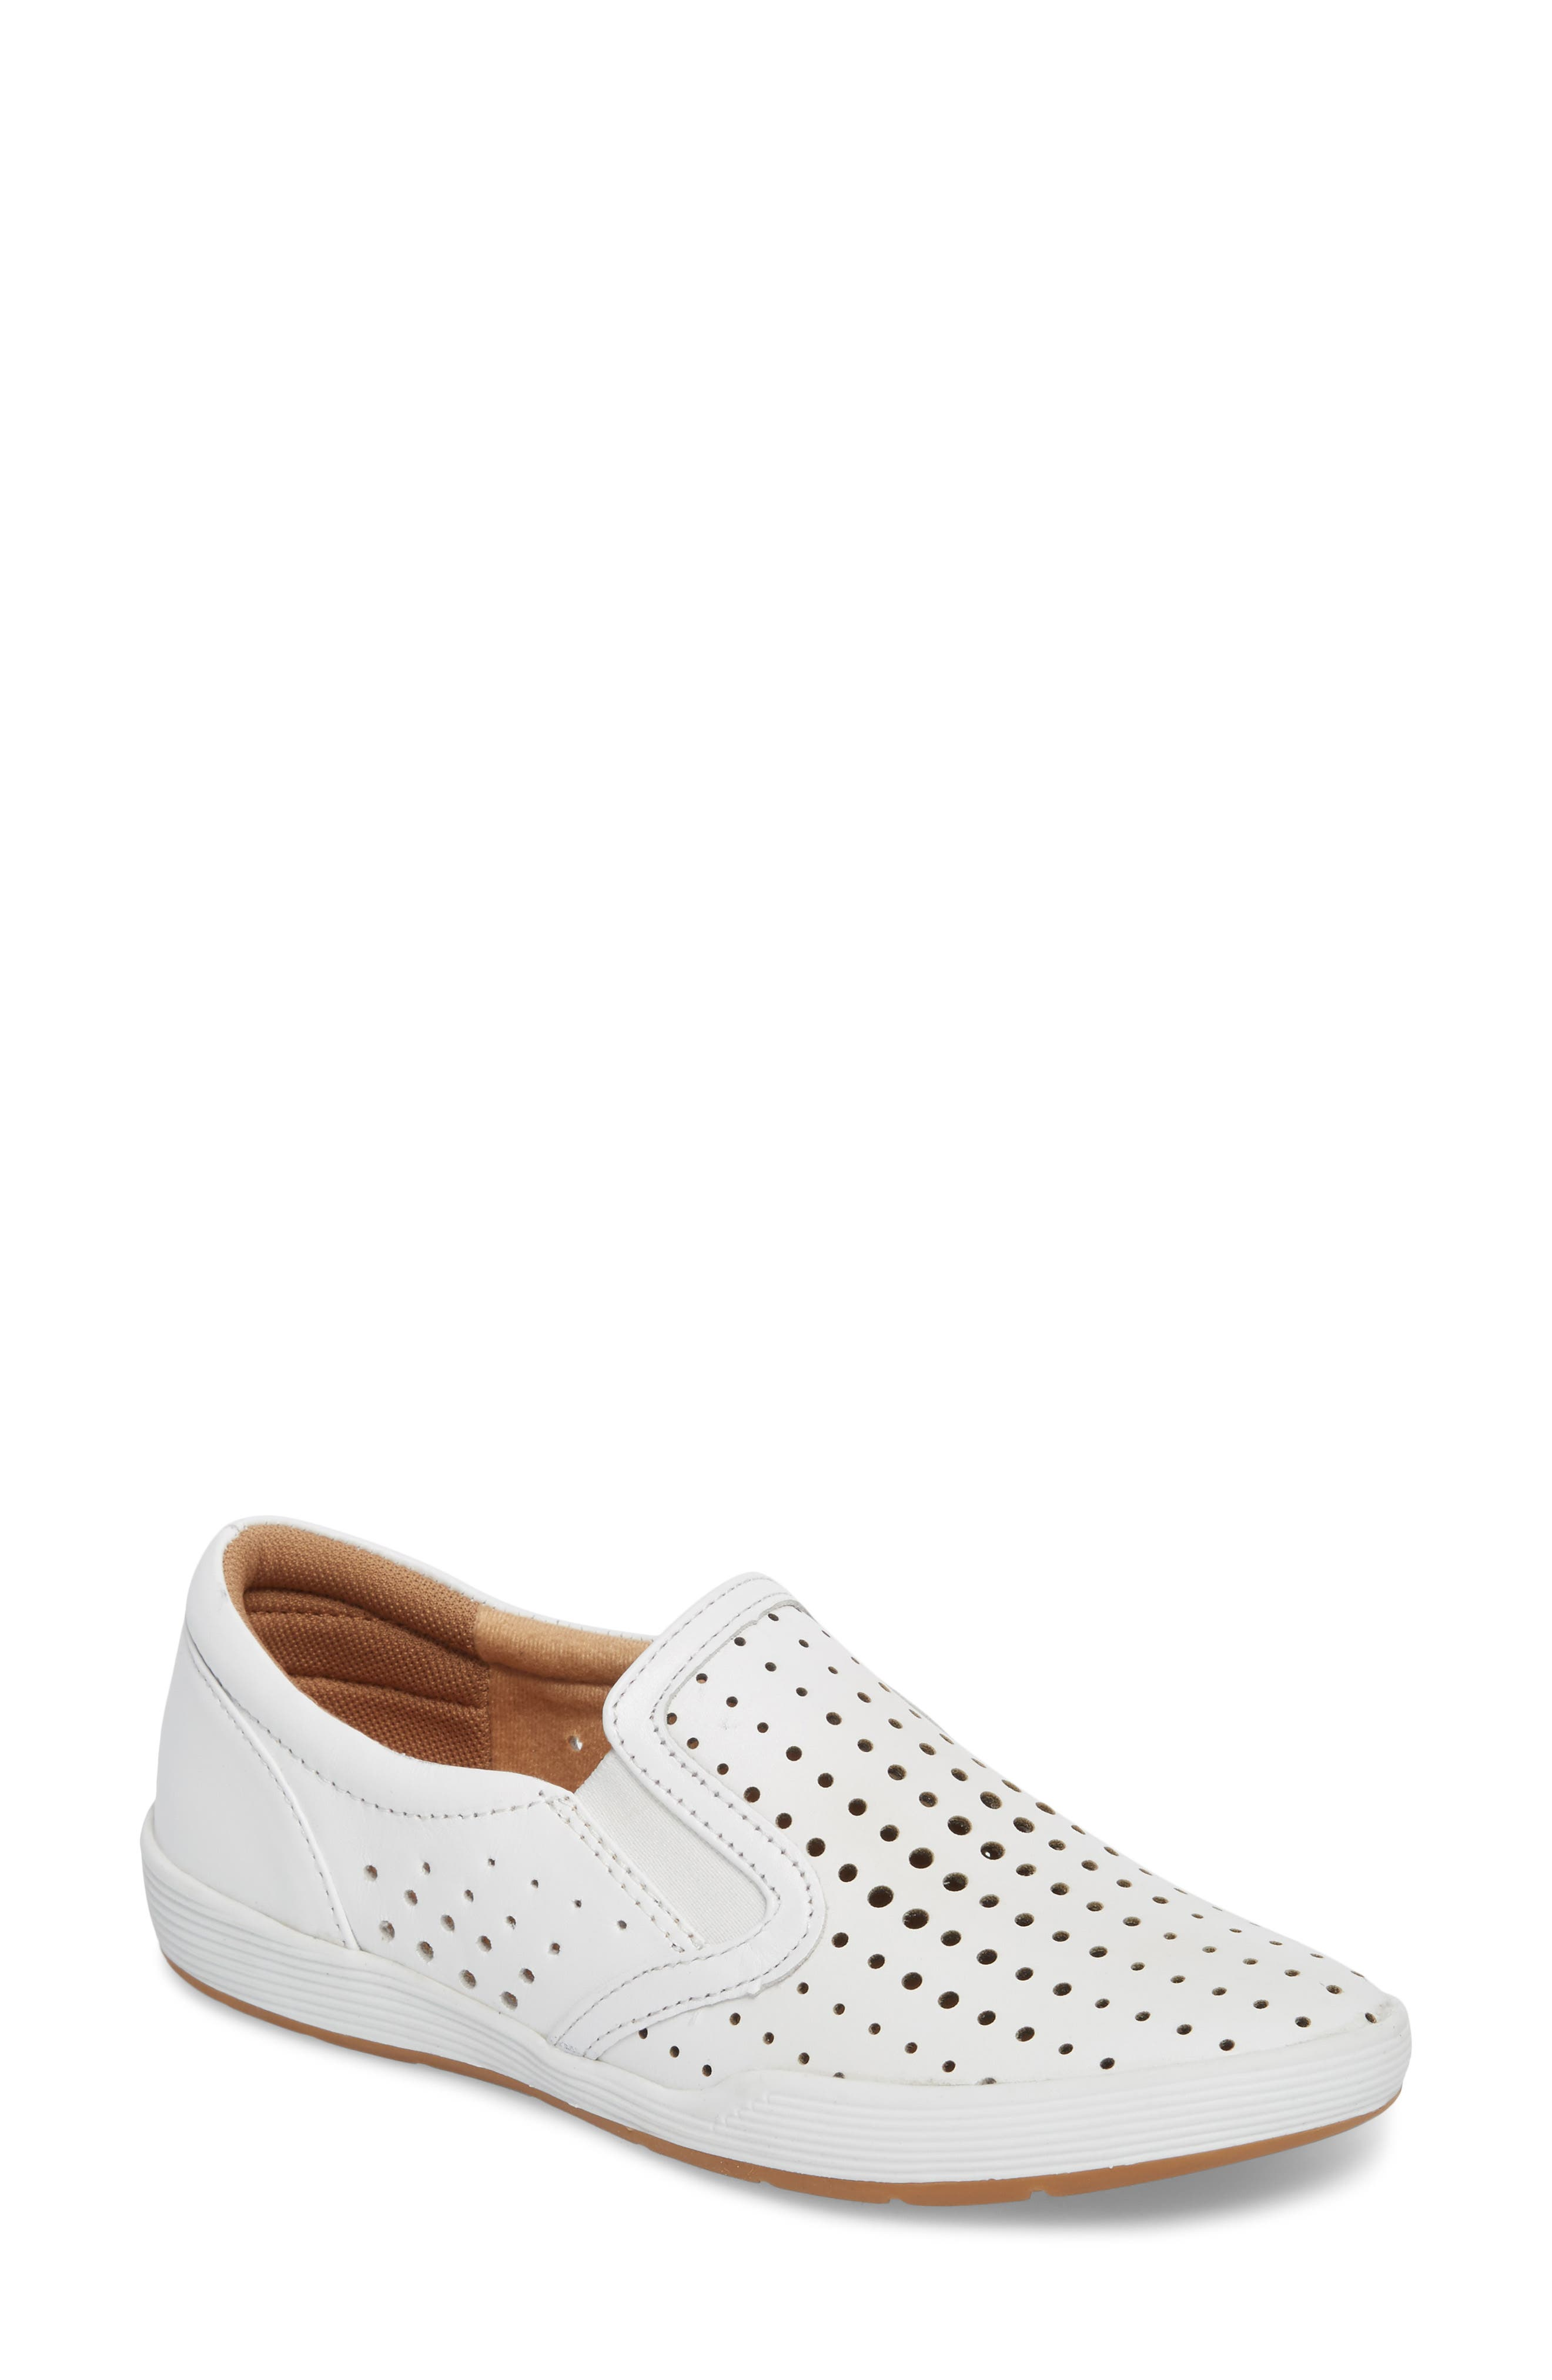 Lyra Perforated Slip-On Sneaker,                             Main thumbnail 1, color,                             White Leather